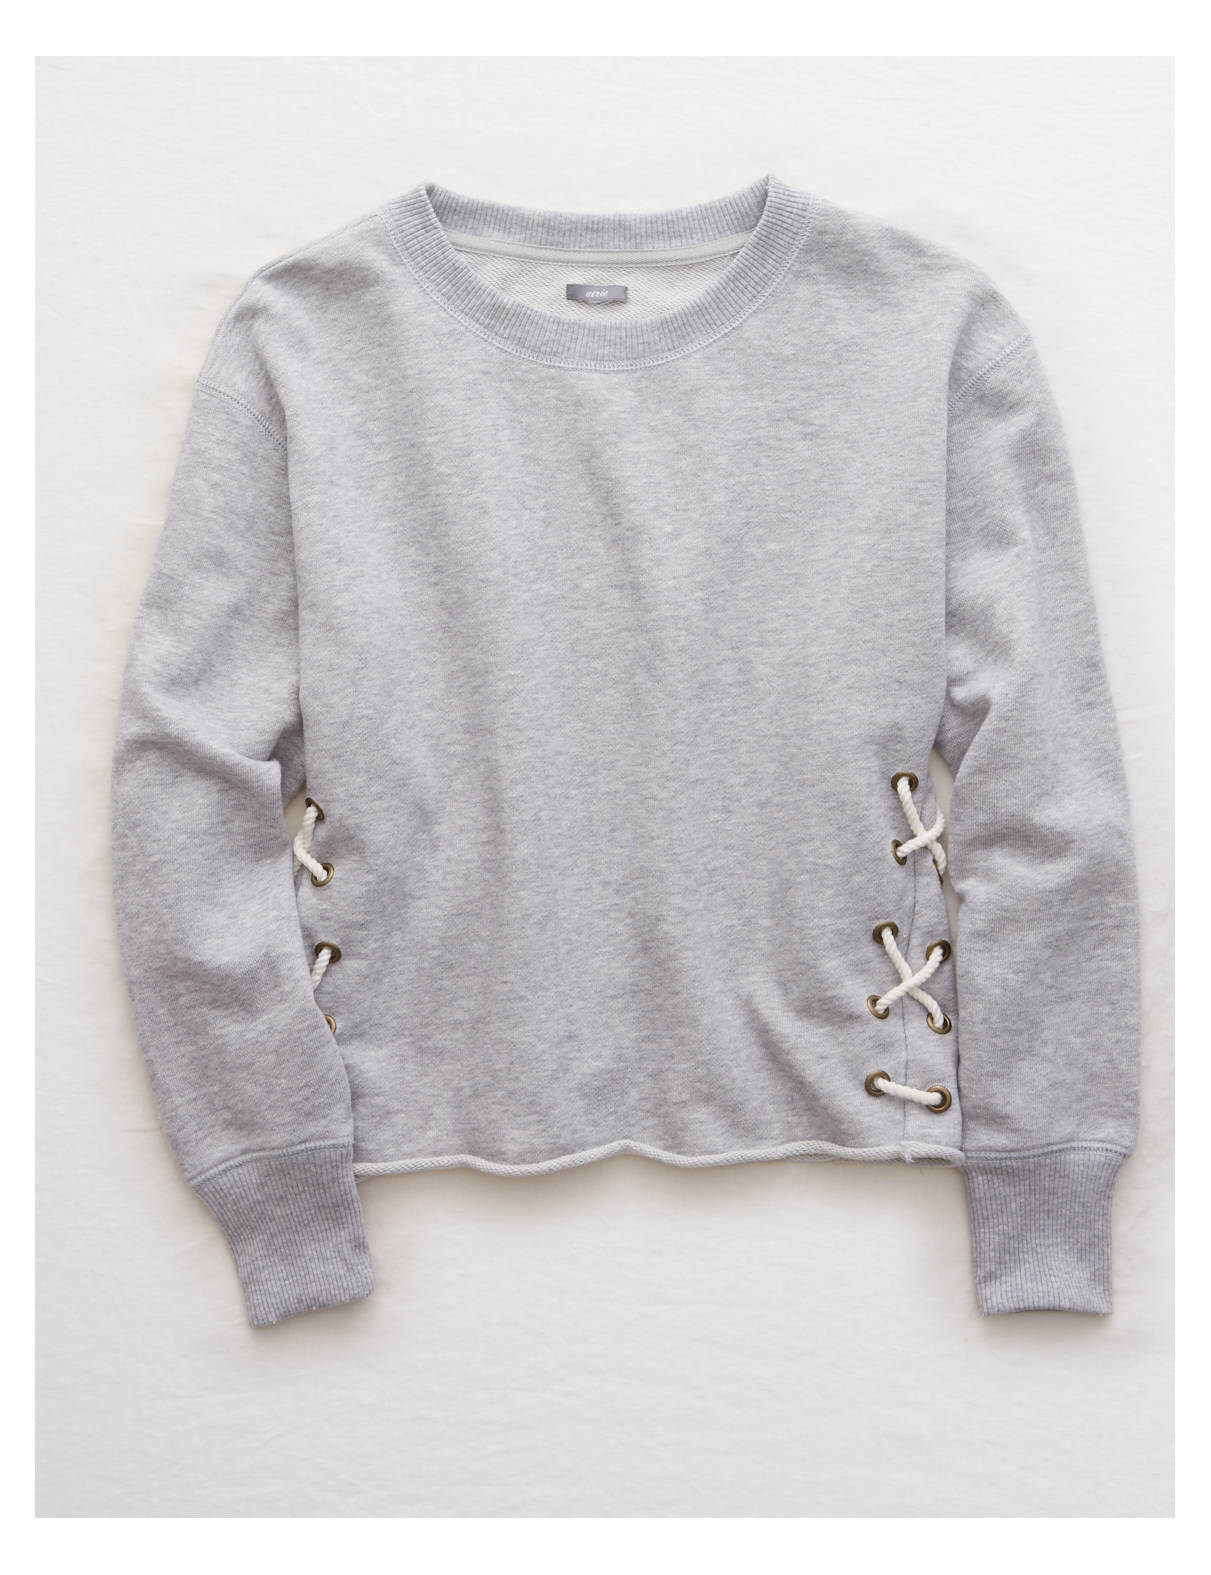 Aerie Lace-Up Side Sweatshirt